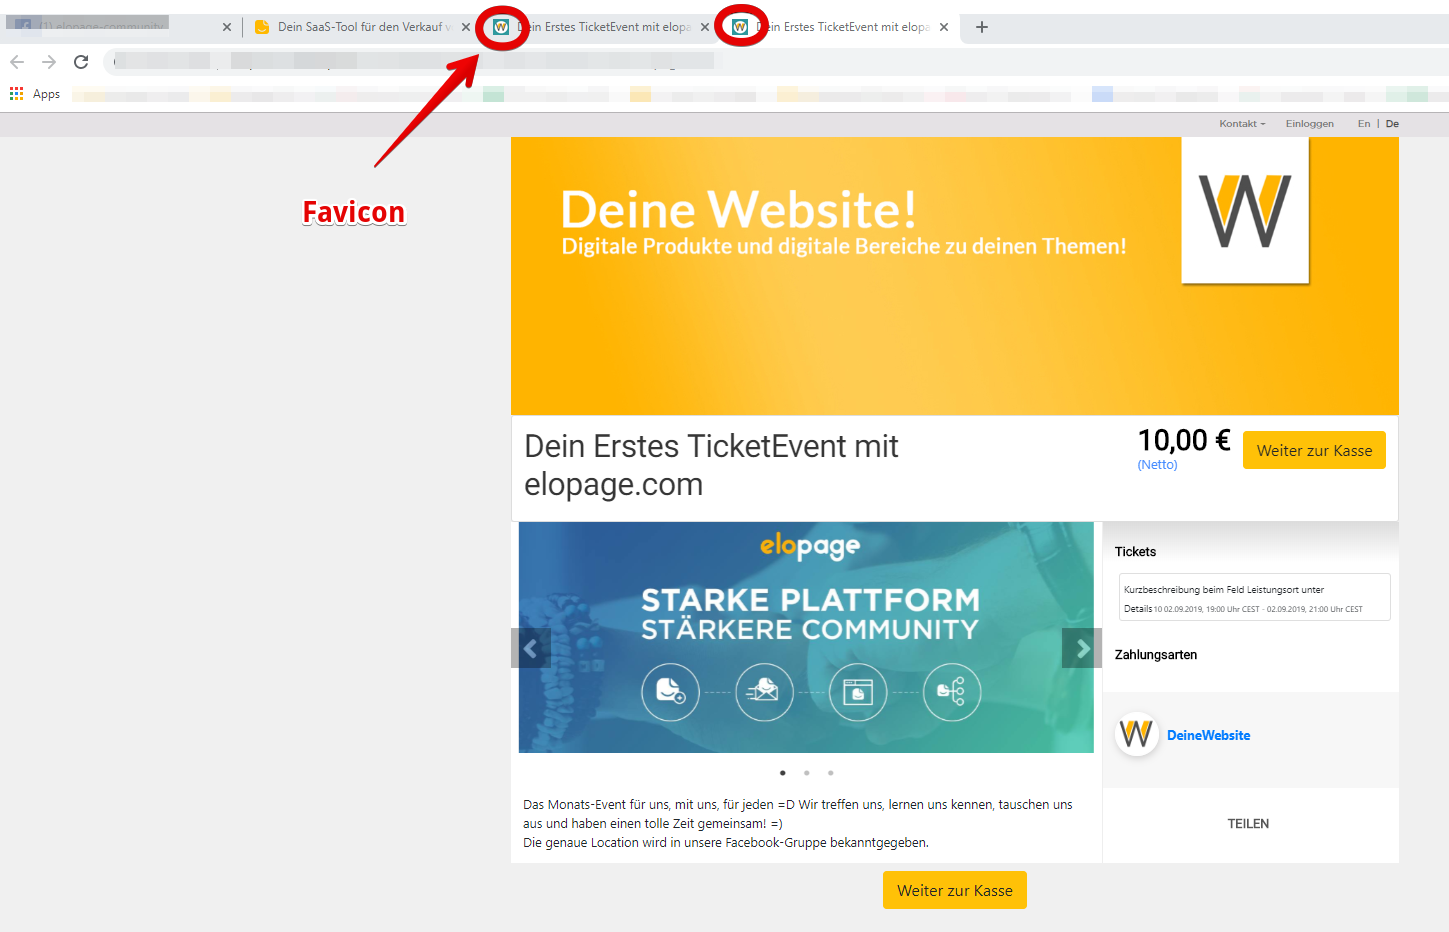 Dein_Erstes_TicketEvent_mit_elopage.com_-_DeineWebsite___elopage_-_Google_Chrome_2019-08-08_11.01.15.png